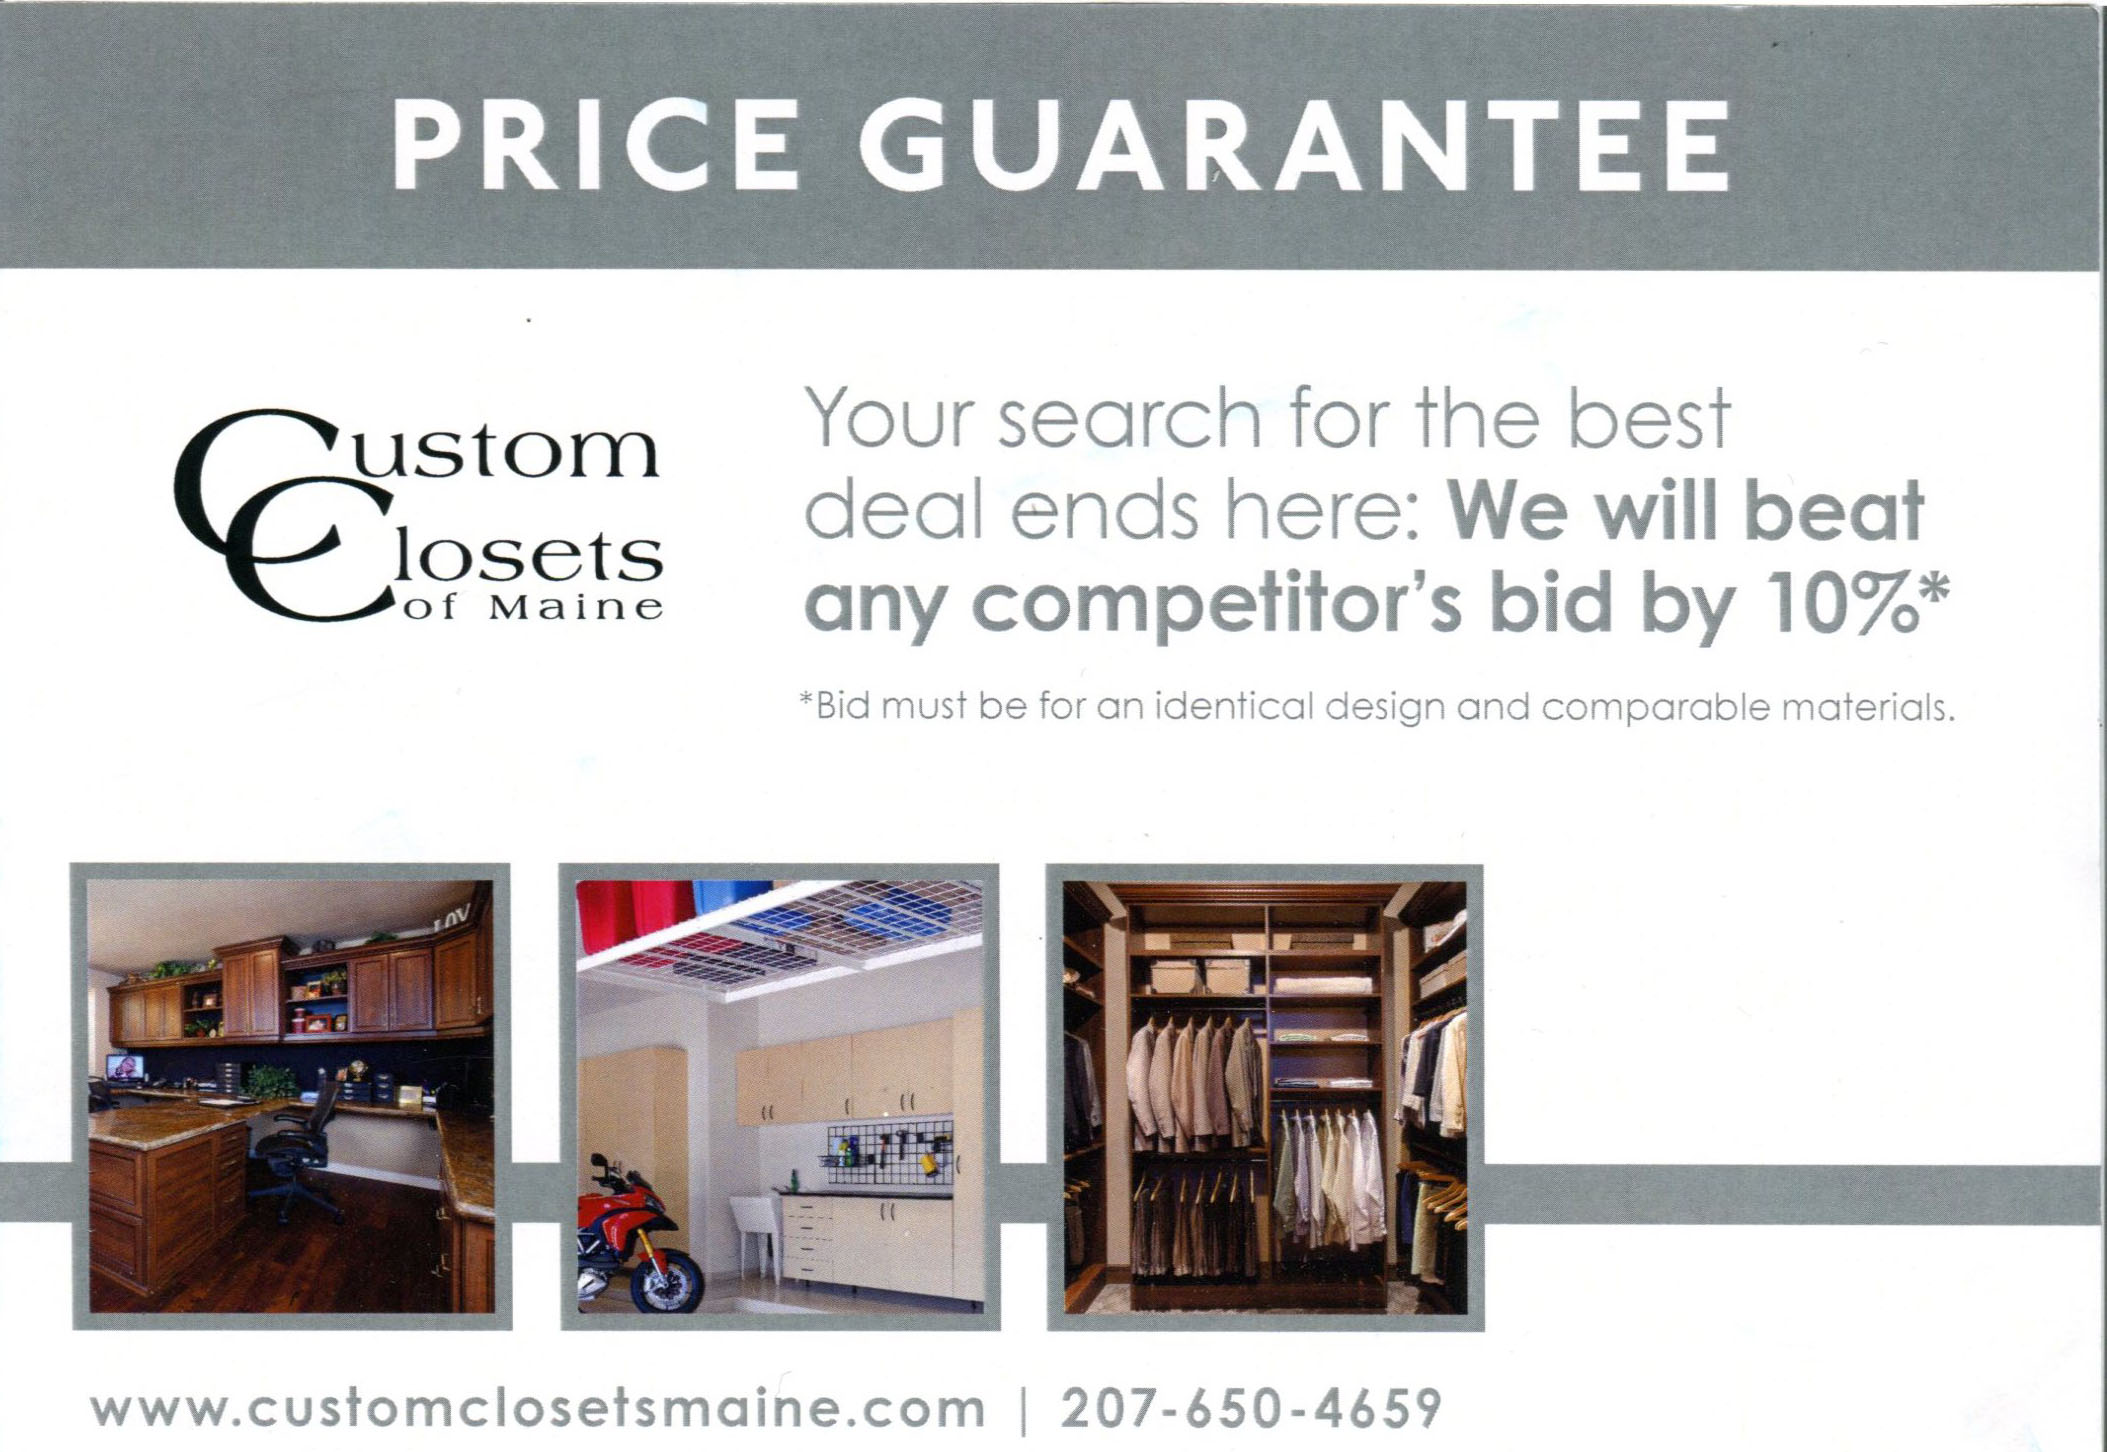 Price Guarantee: We will beat any competitor's bid by ten percent! Bid must be for an identical design and comparable materials.